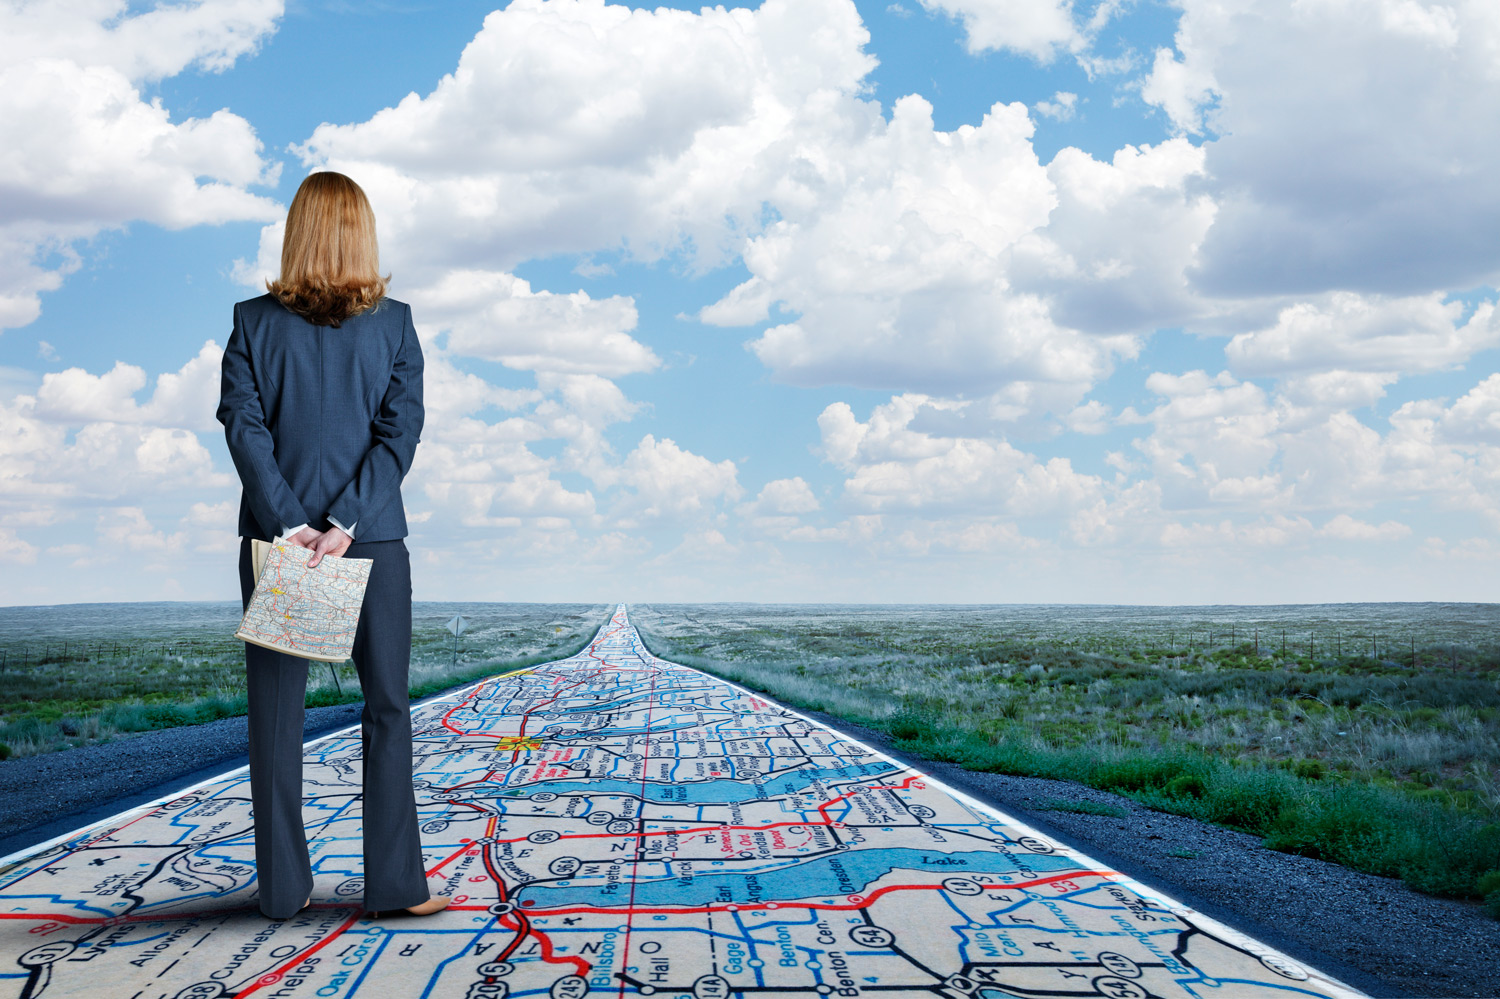 Businesswoman-Stands-On-Long-Road-With-Road-Map-Painted-On-It-614711200_5472x3644.jpg